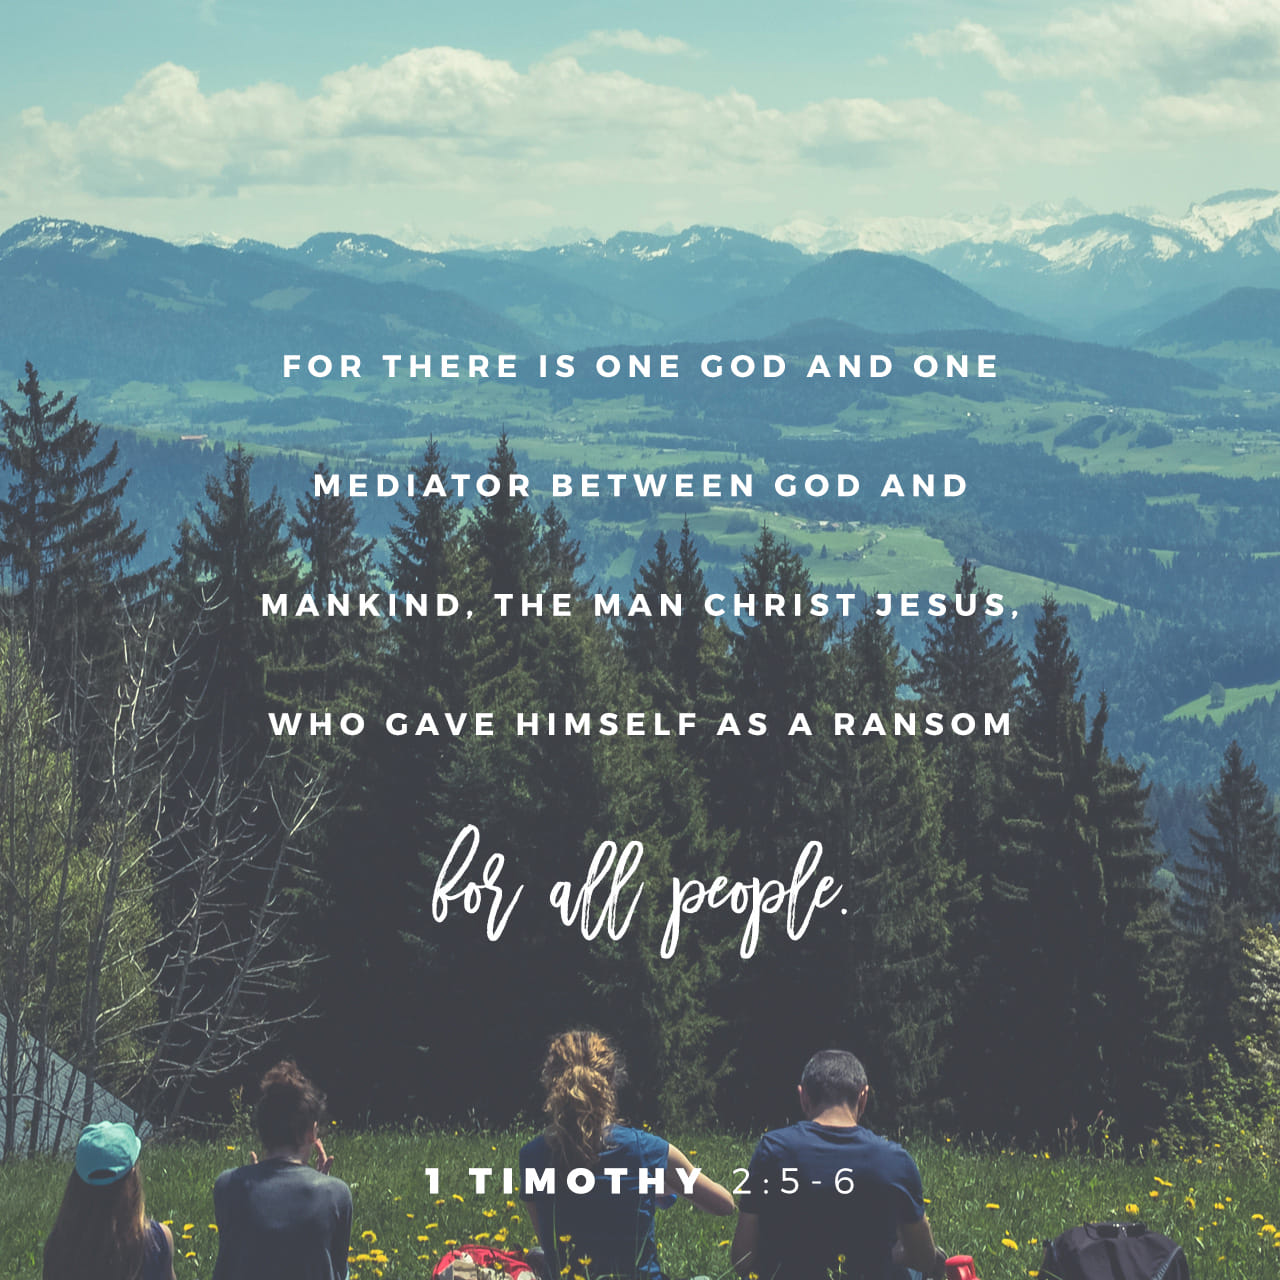 1 Timothy 2:5-6 For there is one God, and one mediator between God and men, the man Christ Jesus; Who gave himself a ransom for all, to be testified in due time. | King James Version (KJV)